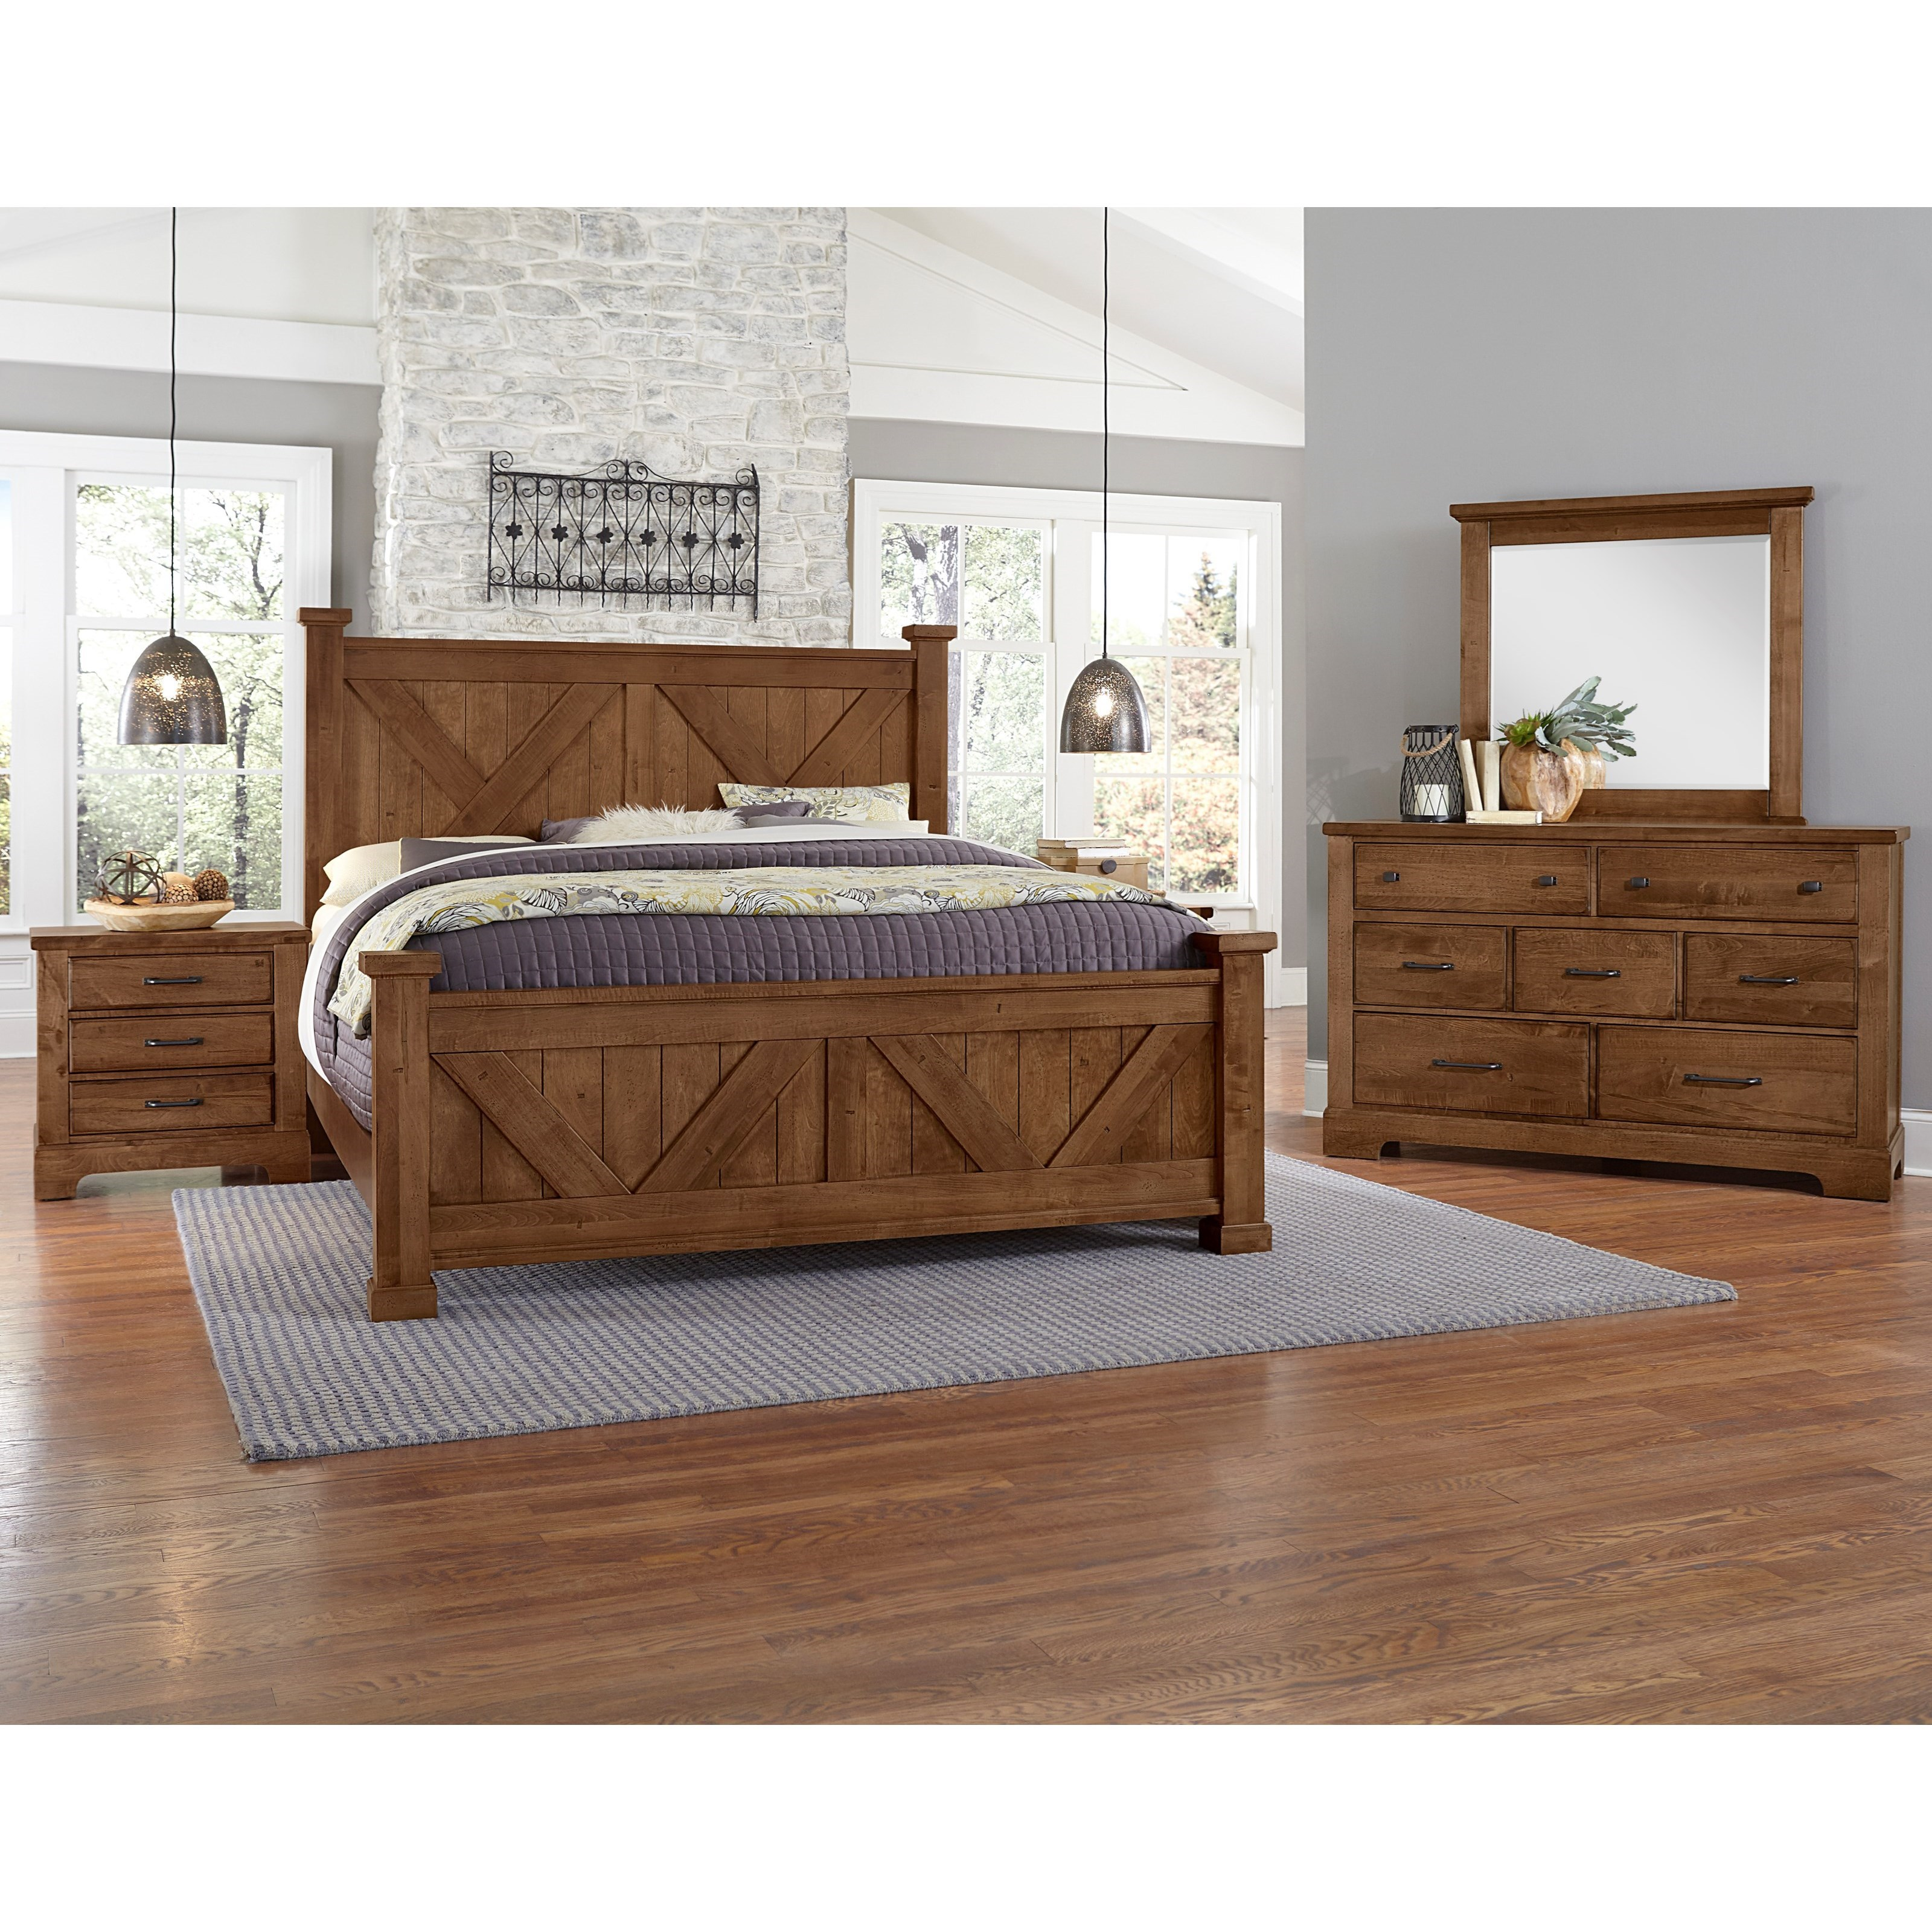 Wexler Queen Bedroom Group by Artisan & Post at Crowley Furniture & Mattress